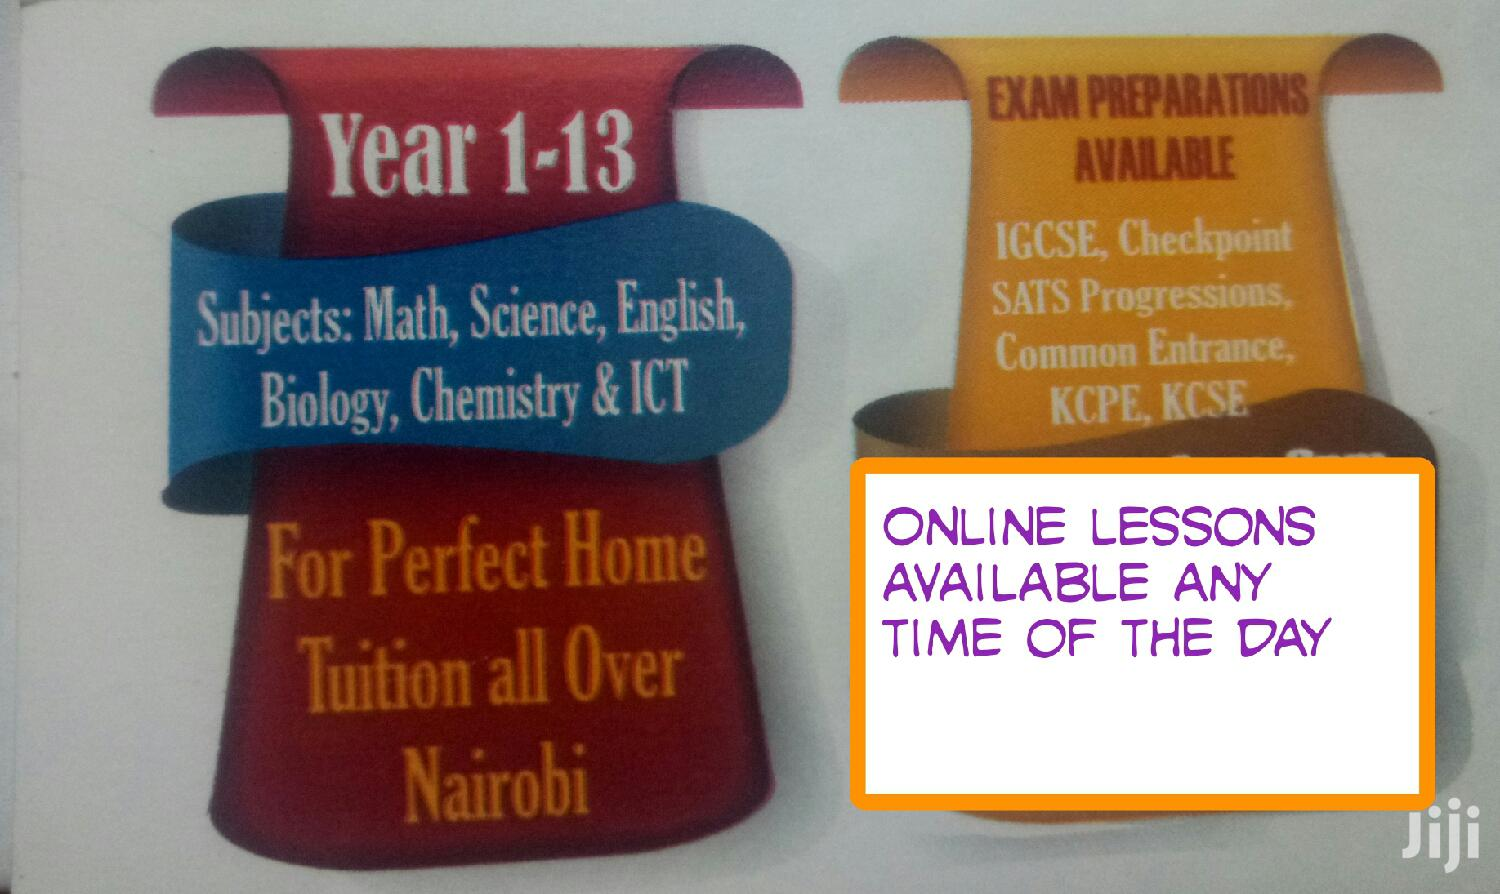 Archive: Tuition By A*Tutors For British Curriculum IGCSE Checkoint Sats & C E